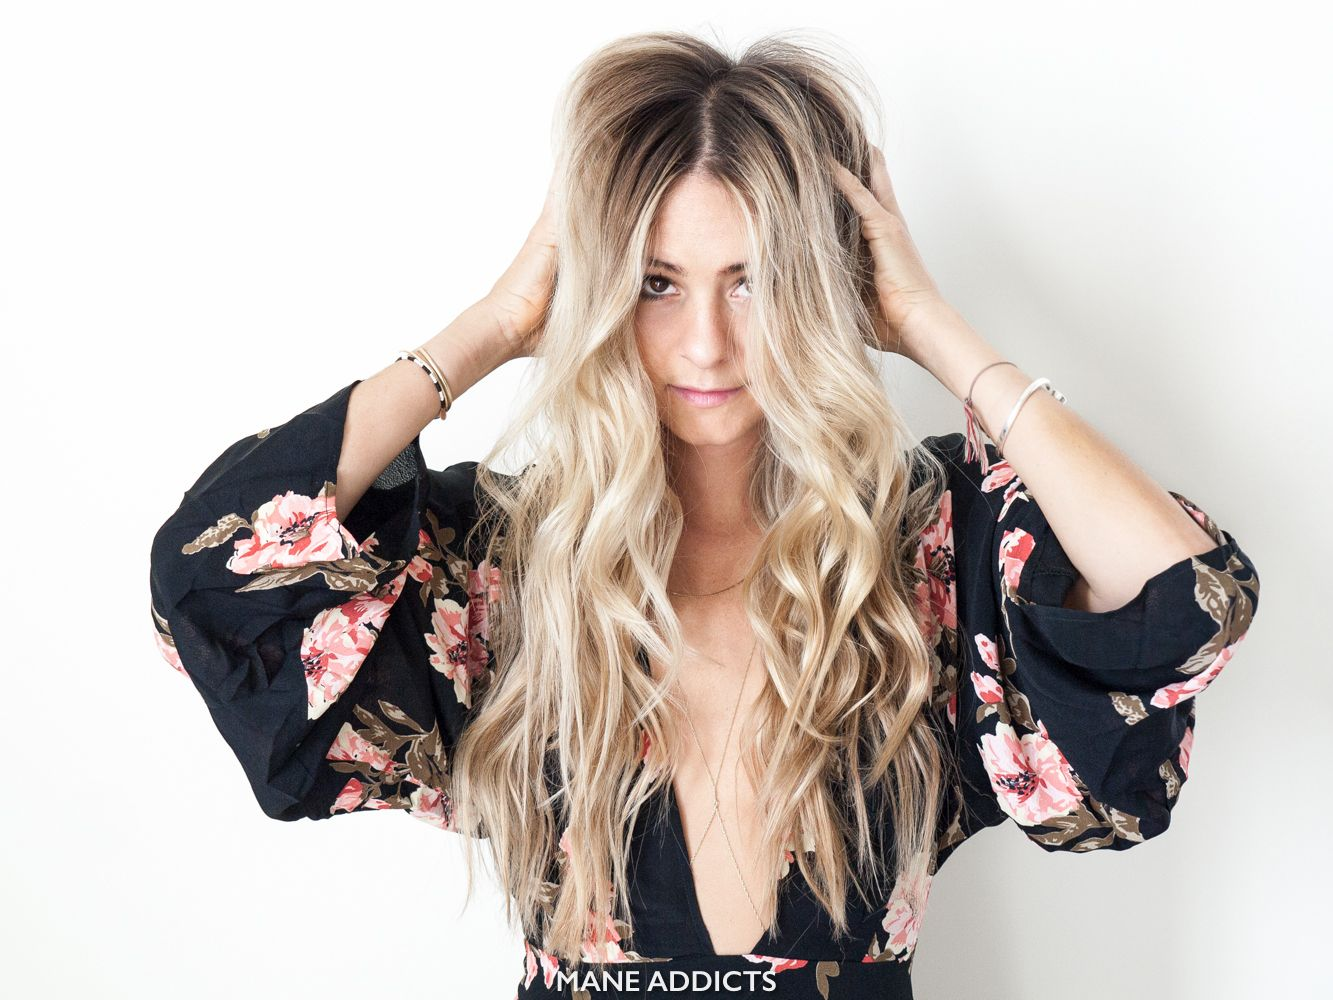 If there's one thing that's on our 2016 bucket list, you can bet it's perfecting the beach wave. This simple look that seems so effortless in photos can seem nearly impossible when we try it on ourselves at home. Although she's a city girl, hairstylist extraordinaire, Laura Polko looks the part of the mega beach …